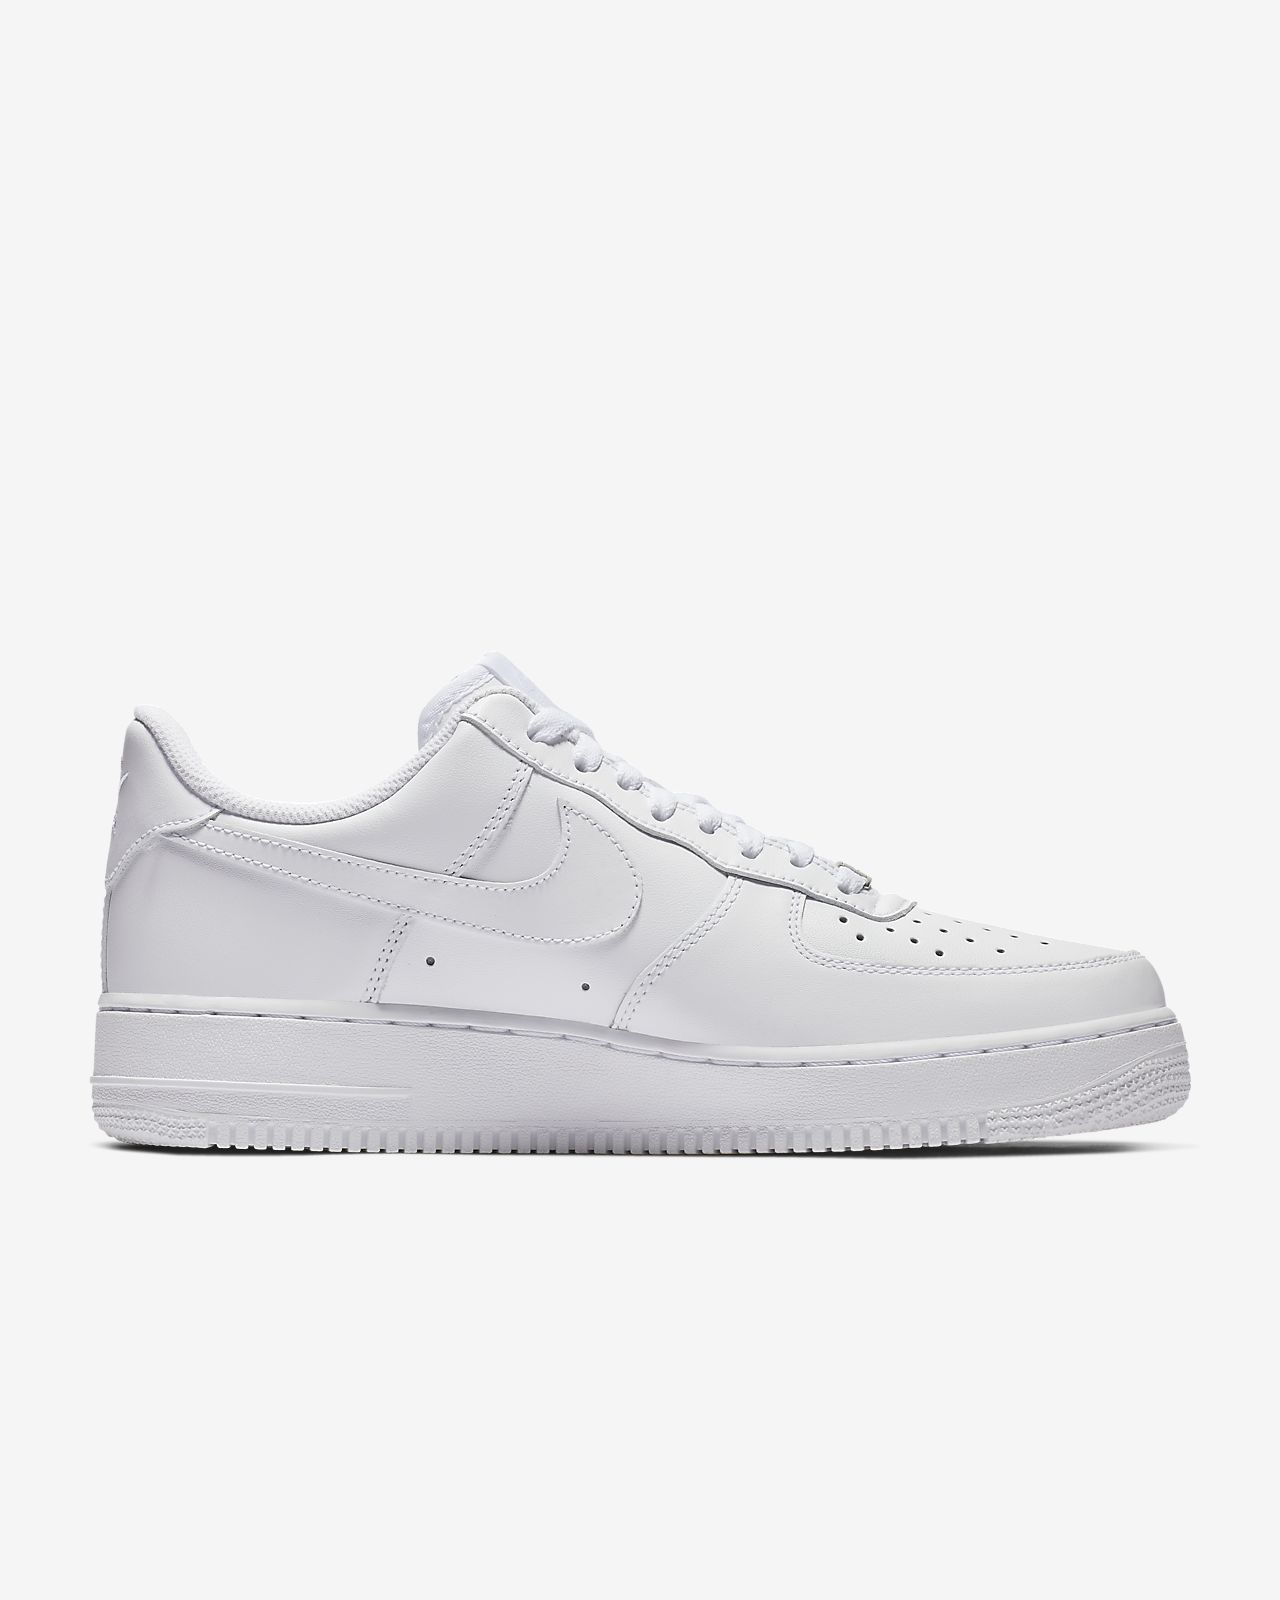 finest selection eb8fa 90f51 ... Nike Air Force 1 07 Damenschuh